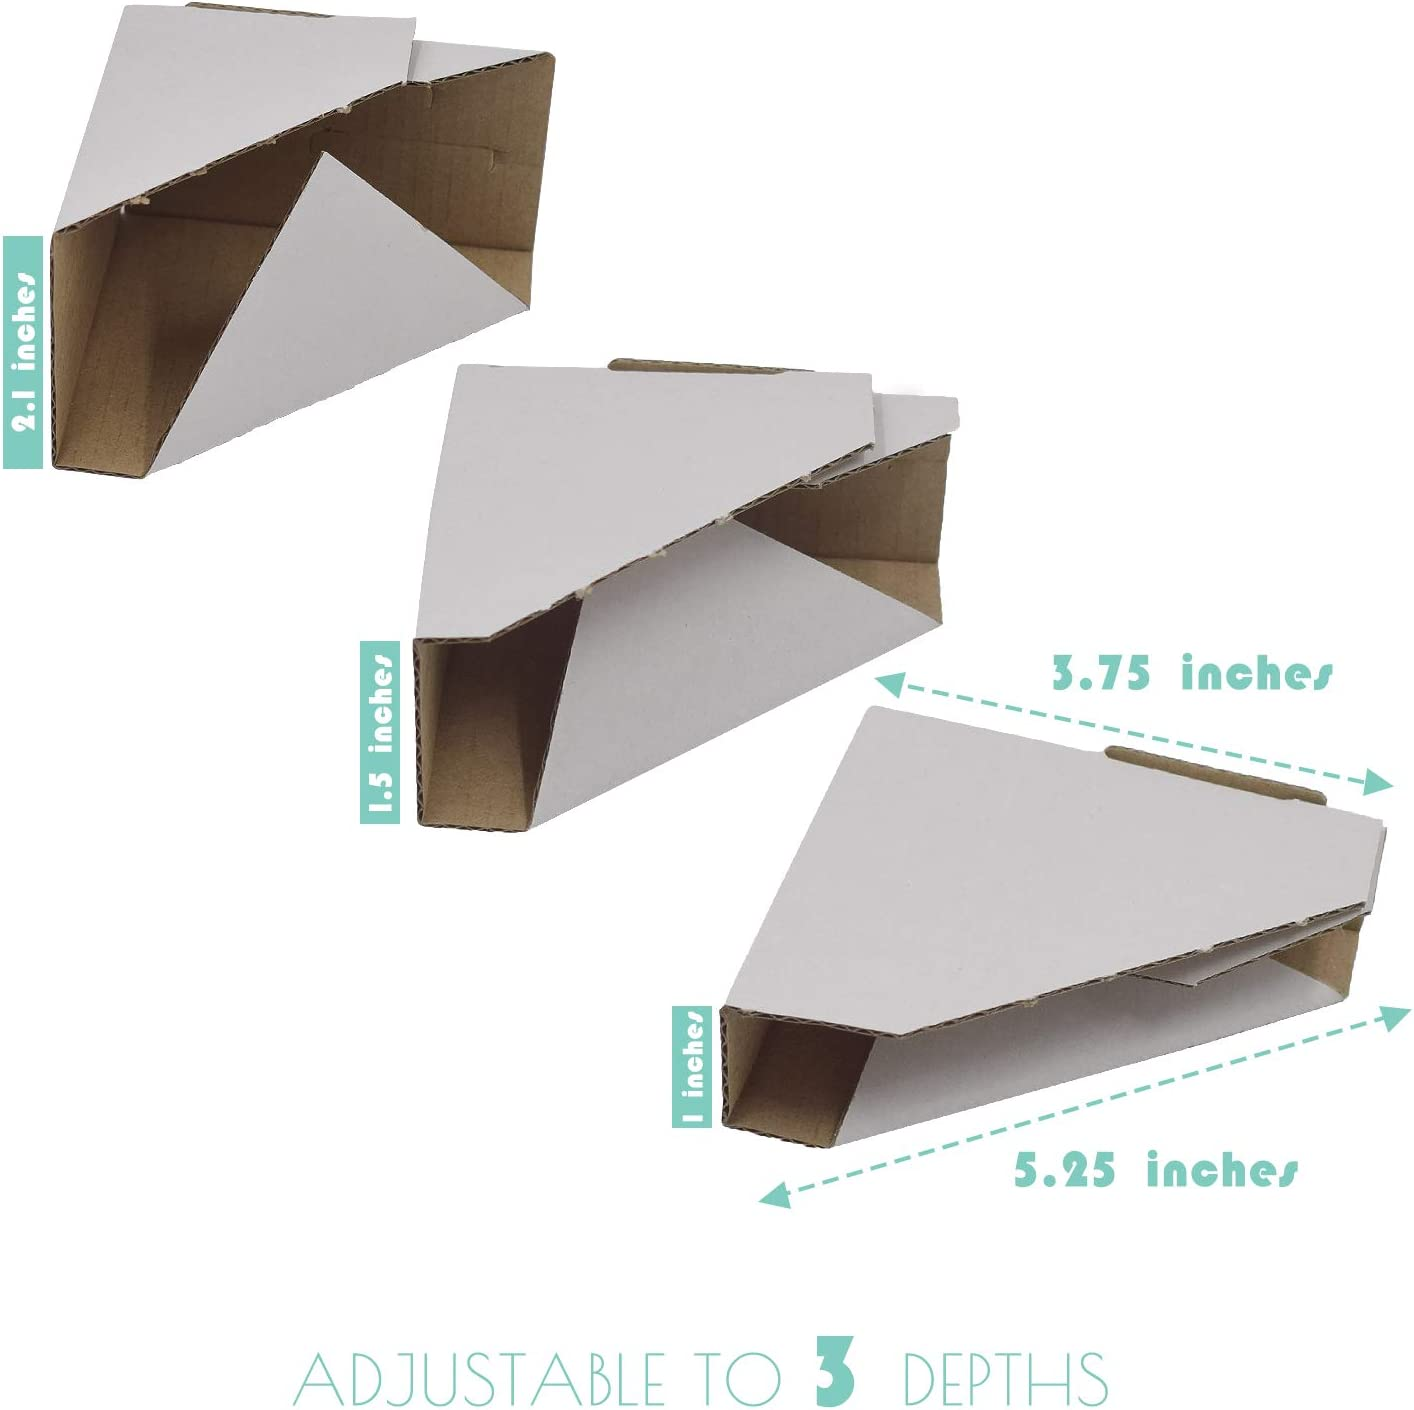 120-Pack Packing or Moving Art Adjustable Picture Frame Cardboard Corner Protectors for Shipping 3 Size Depths to fit Frames from 0.5-1.5 Mat Board Center